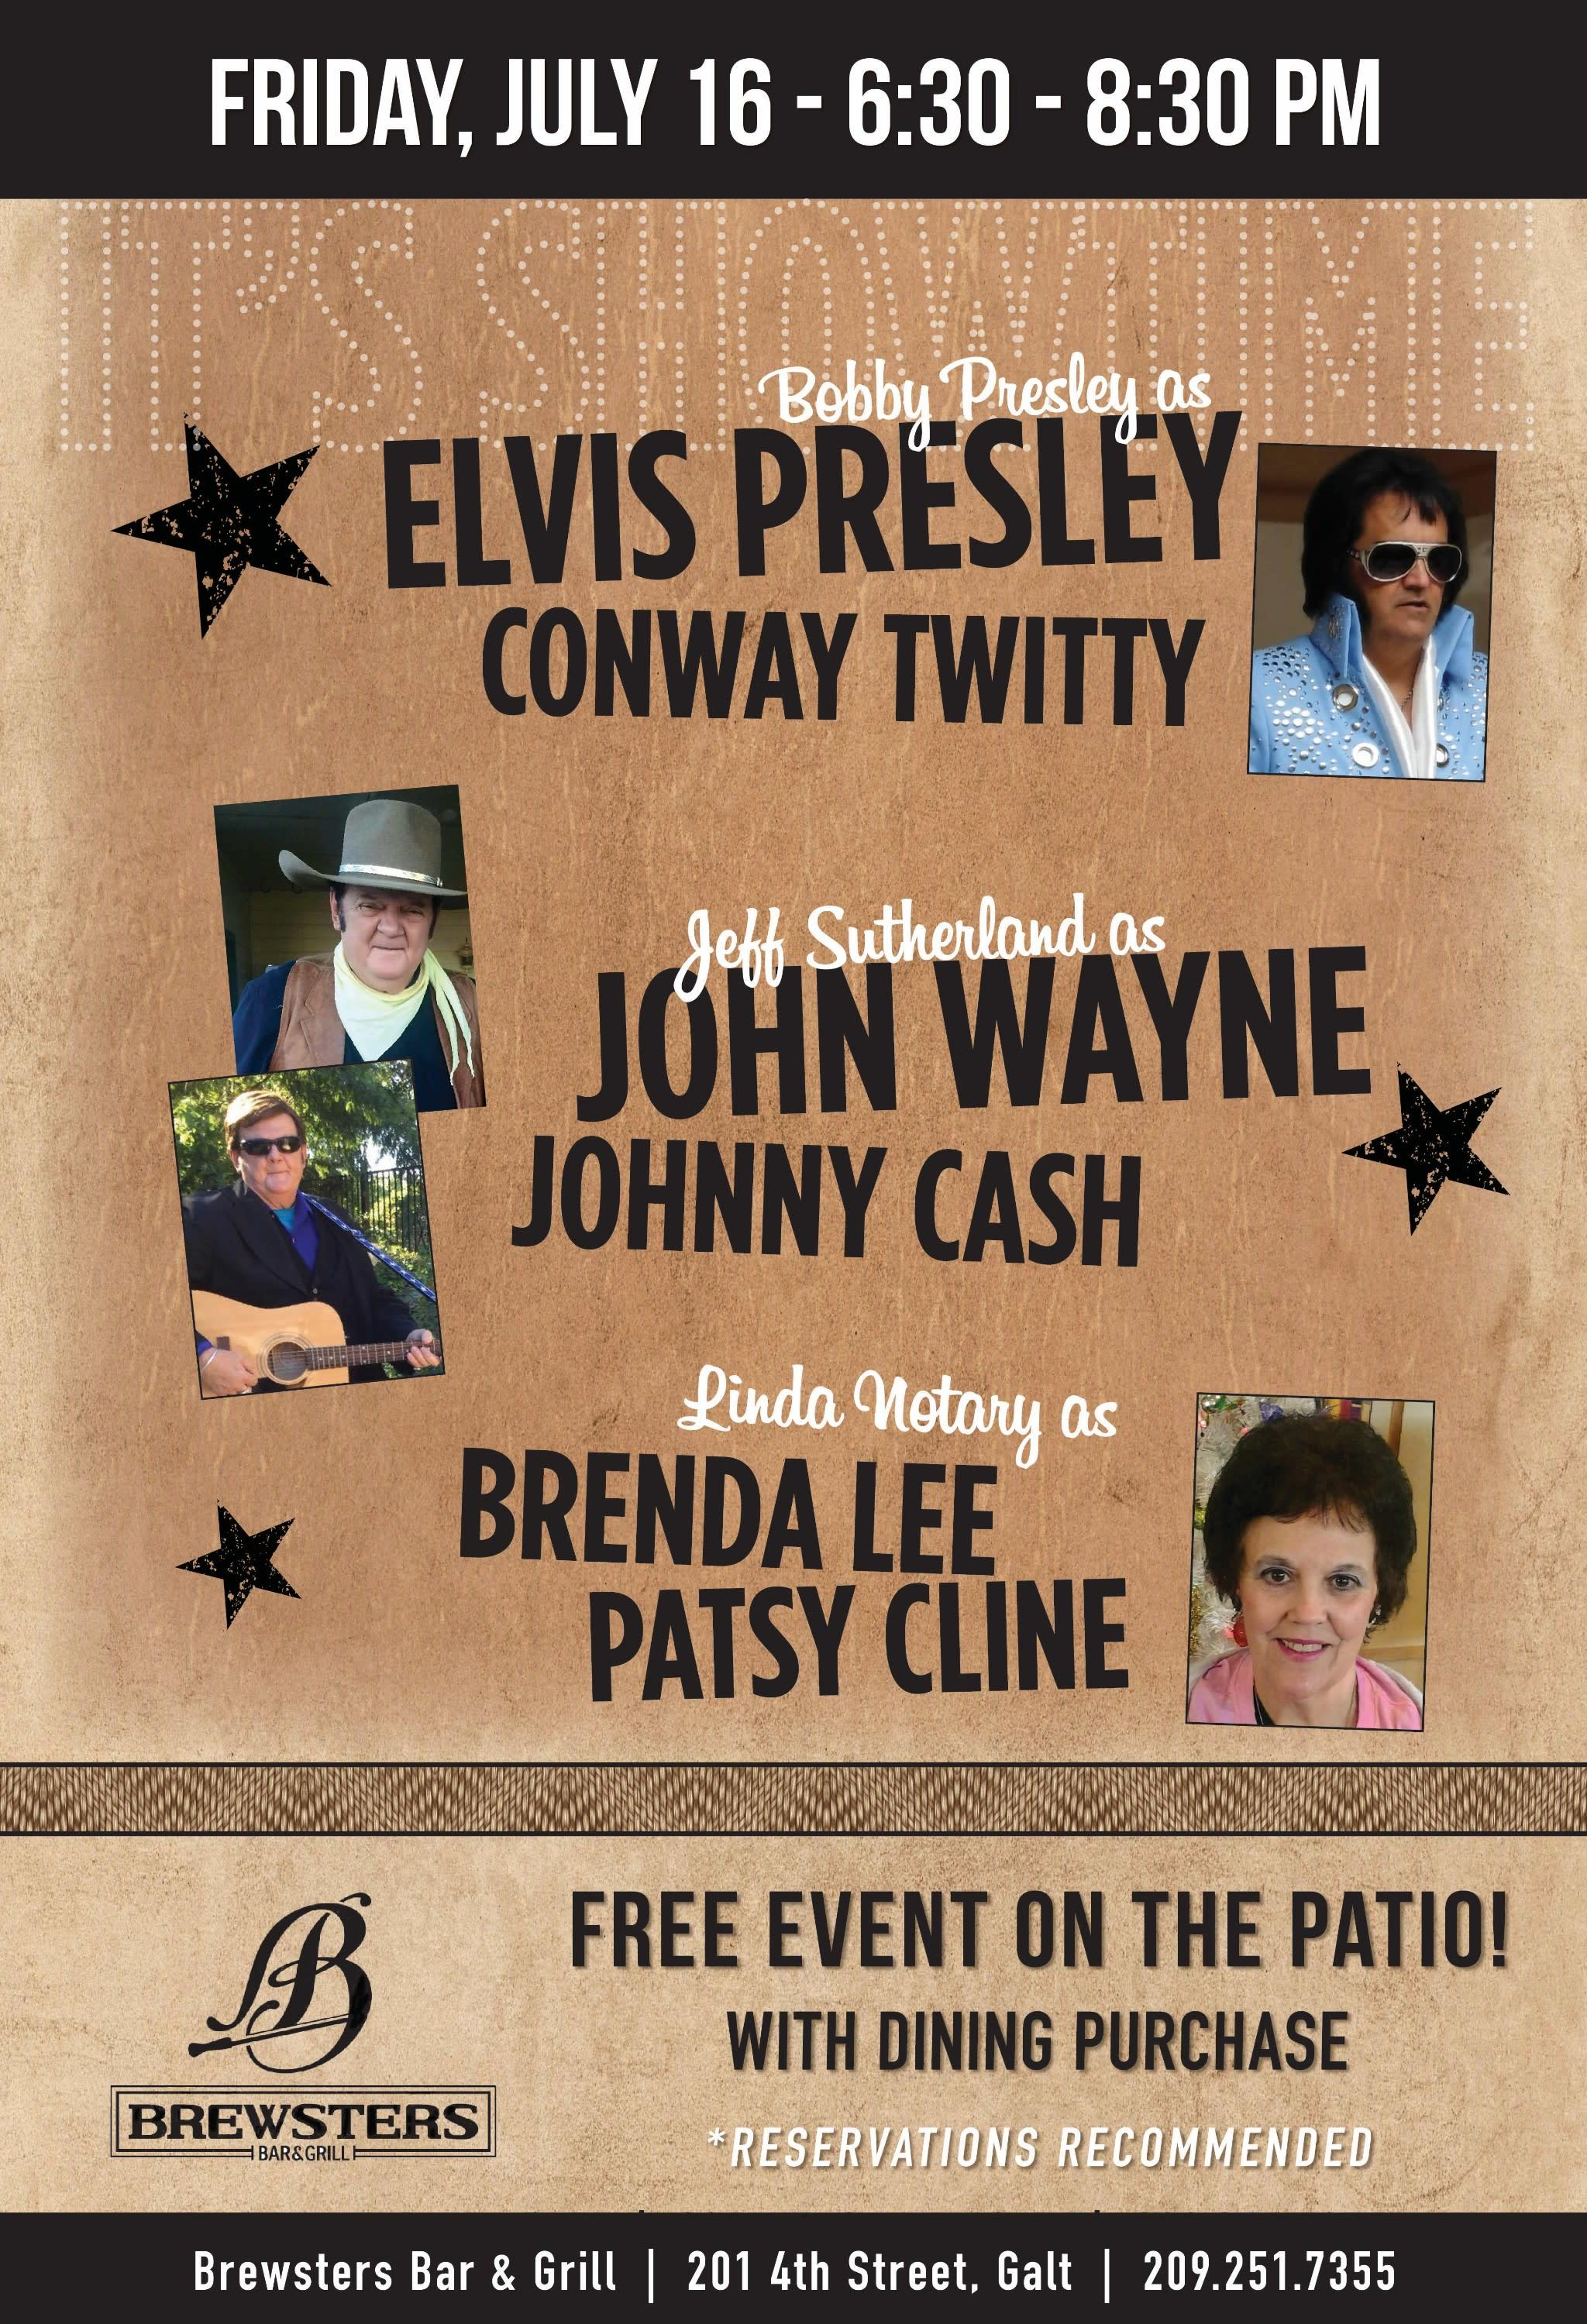 Live event flyer for performances (impersonations) of Elvis Presley, Johnny Cash & Patsy Cline) at Brewsters on 07/16/21